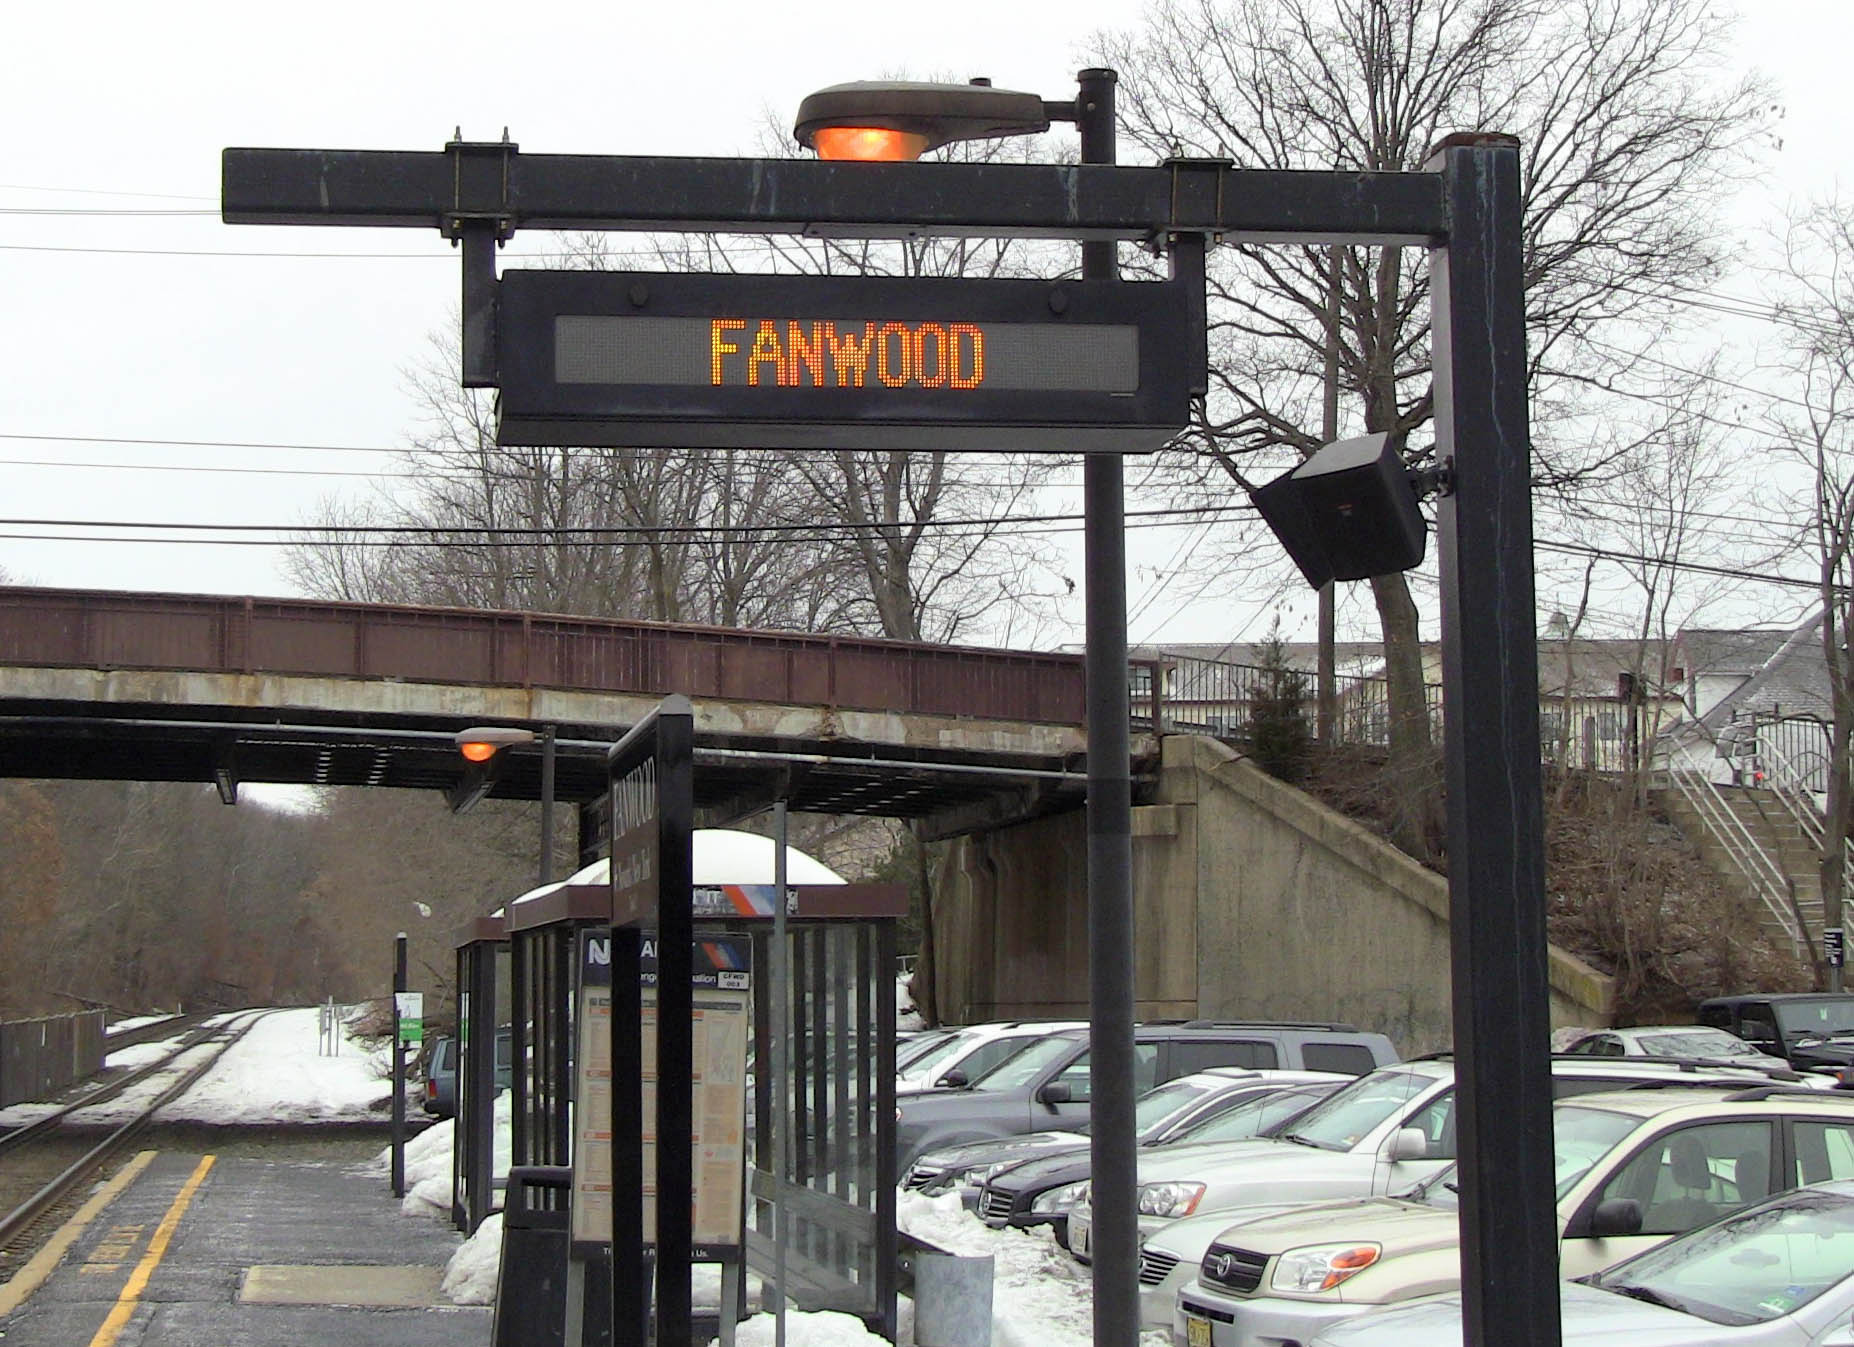 Train schedule raritan nj nyc area